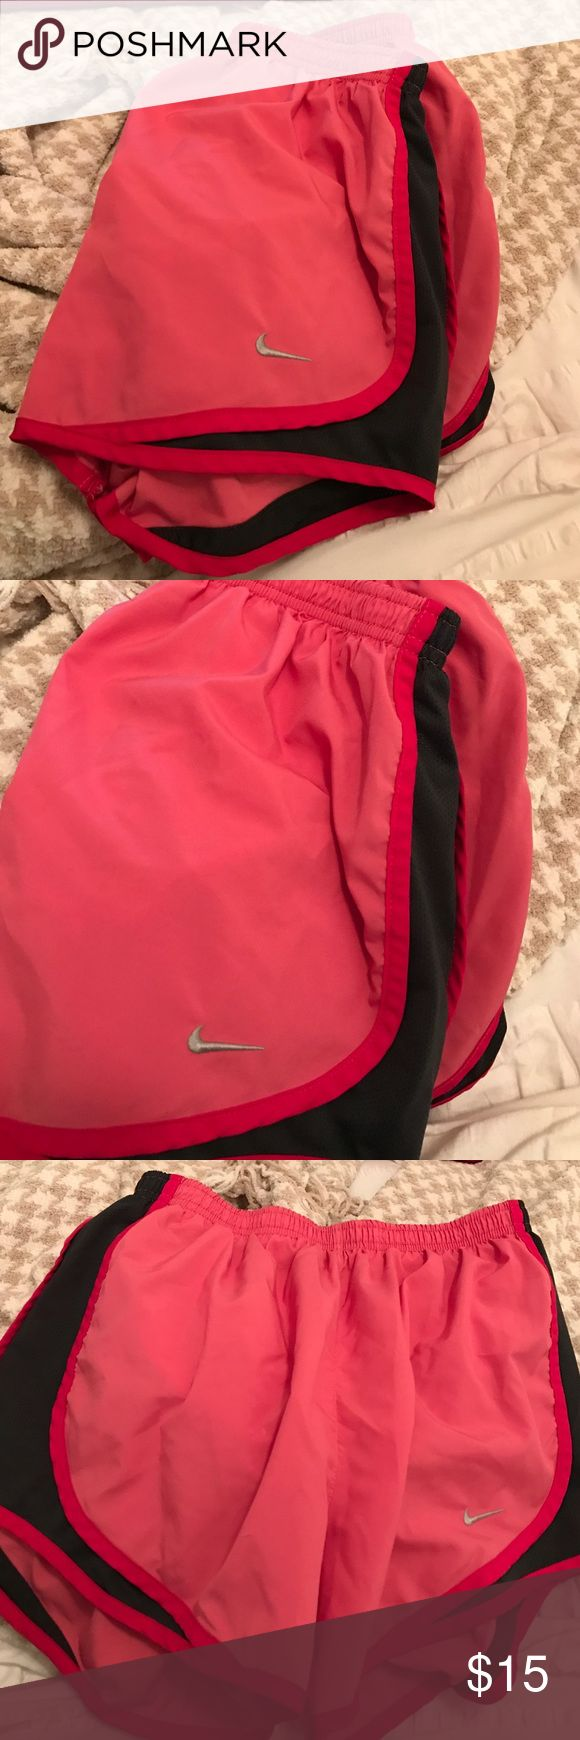 Pink Nike shorts Pink and charcoal Nike shorts - perfect condition Nike Other